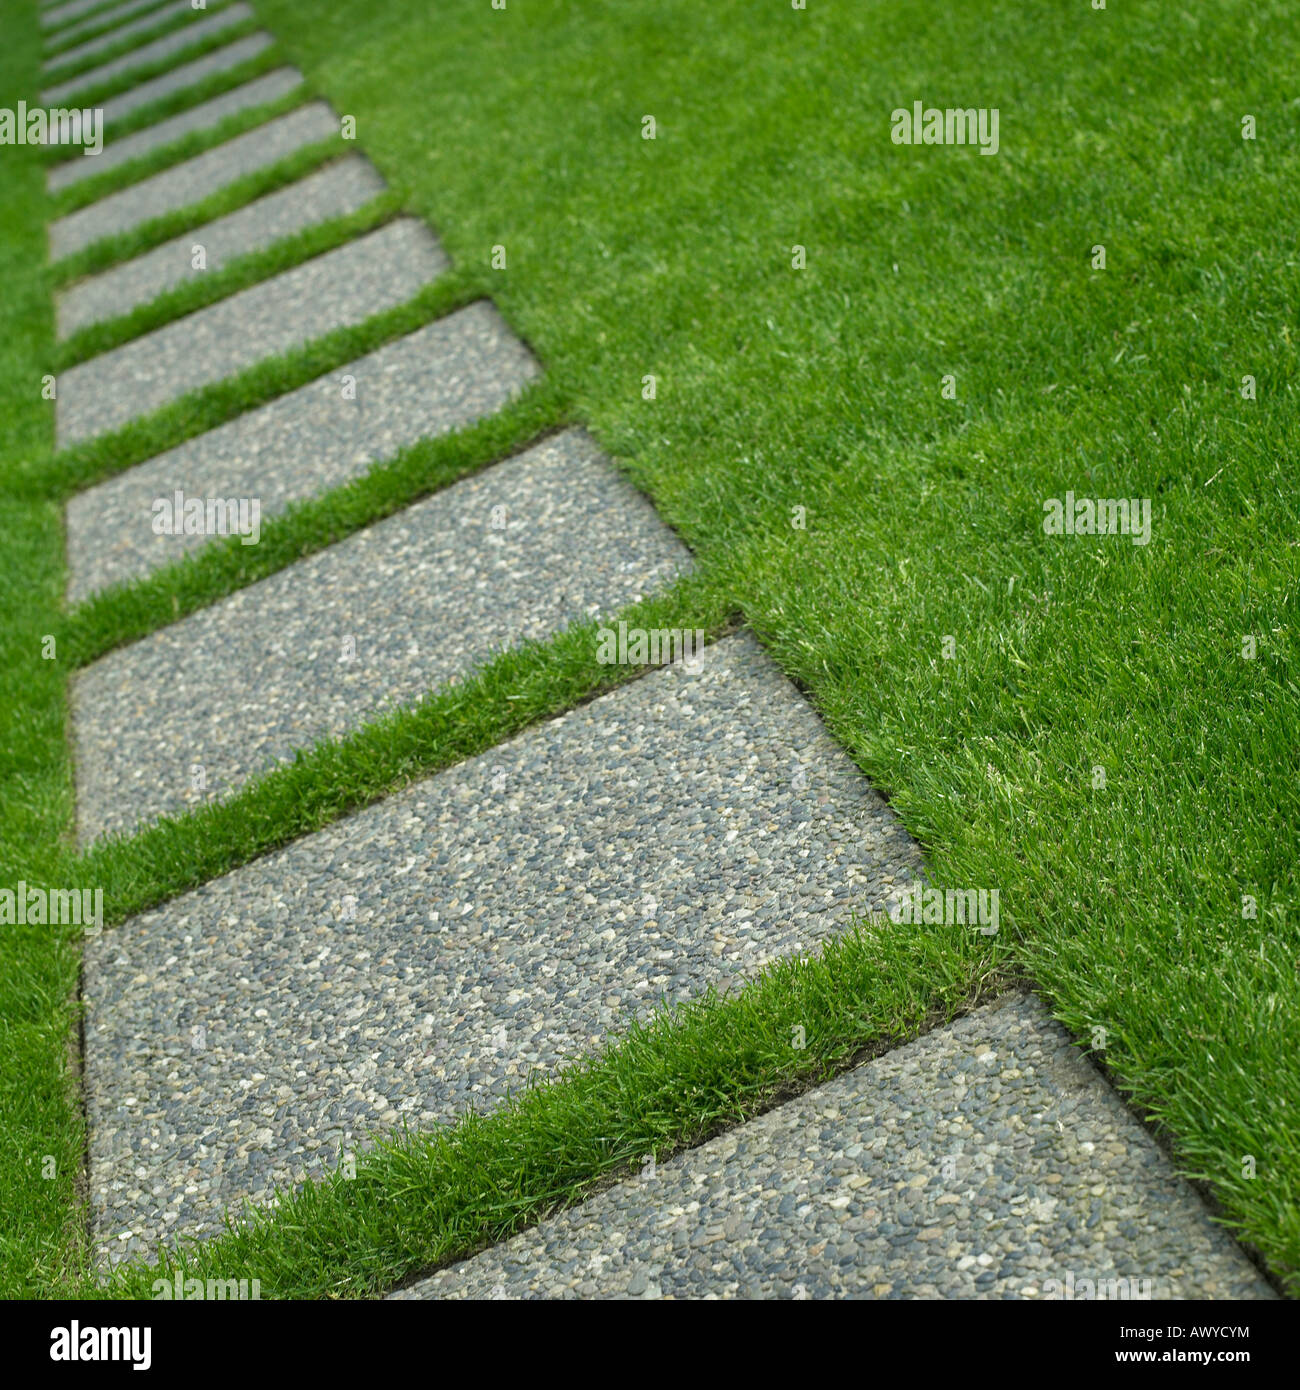 Stone walkway through grass stock photo royalty free for Stone path in grass